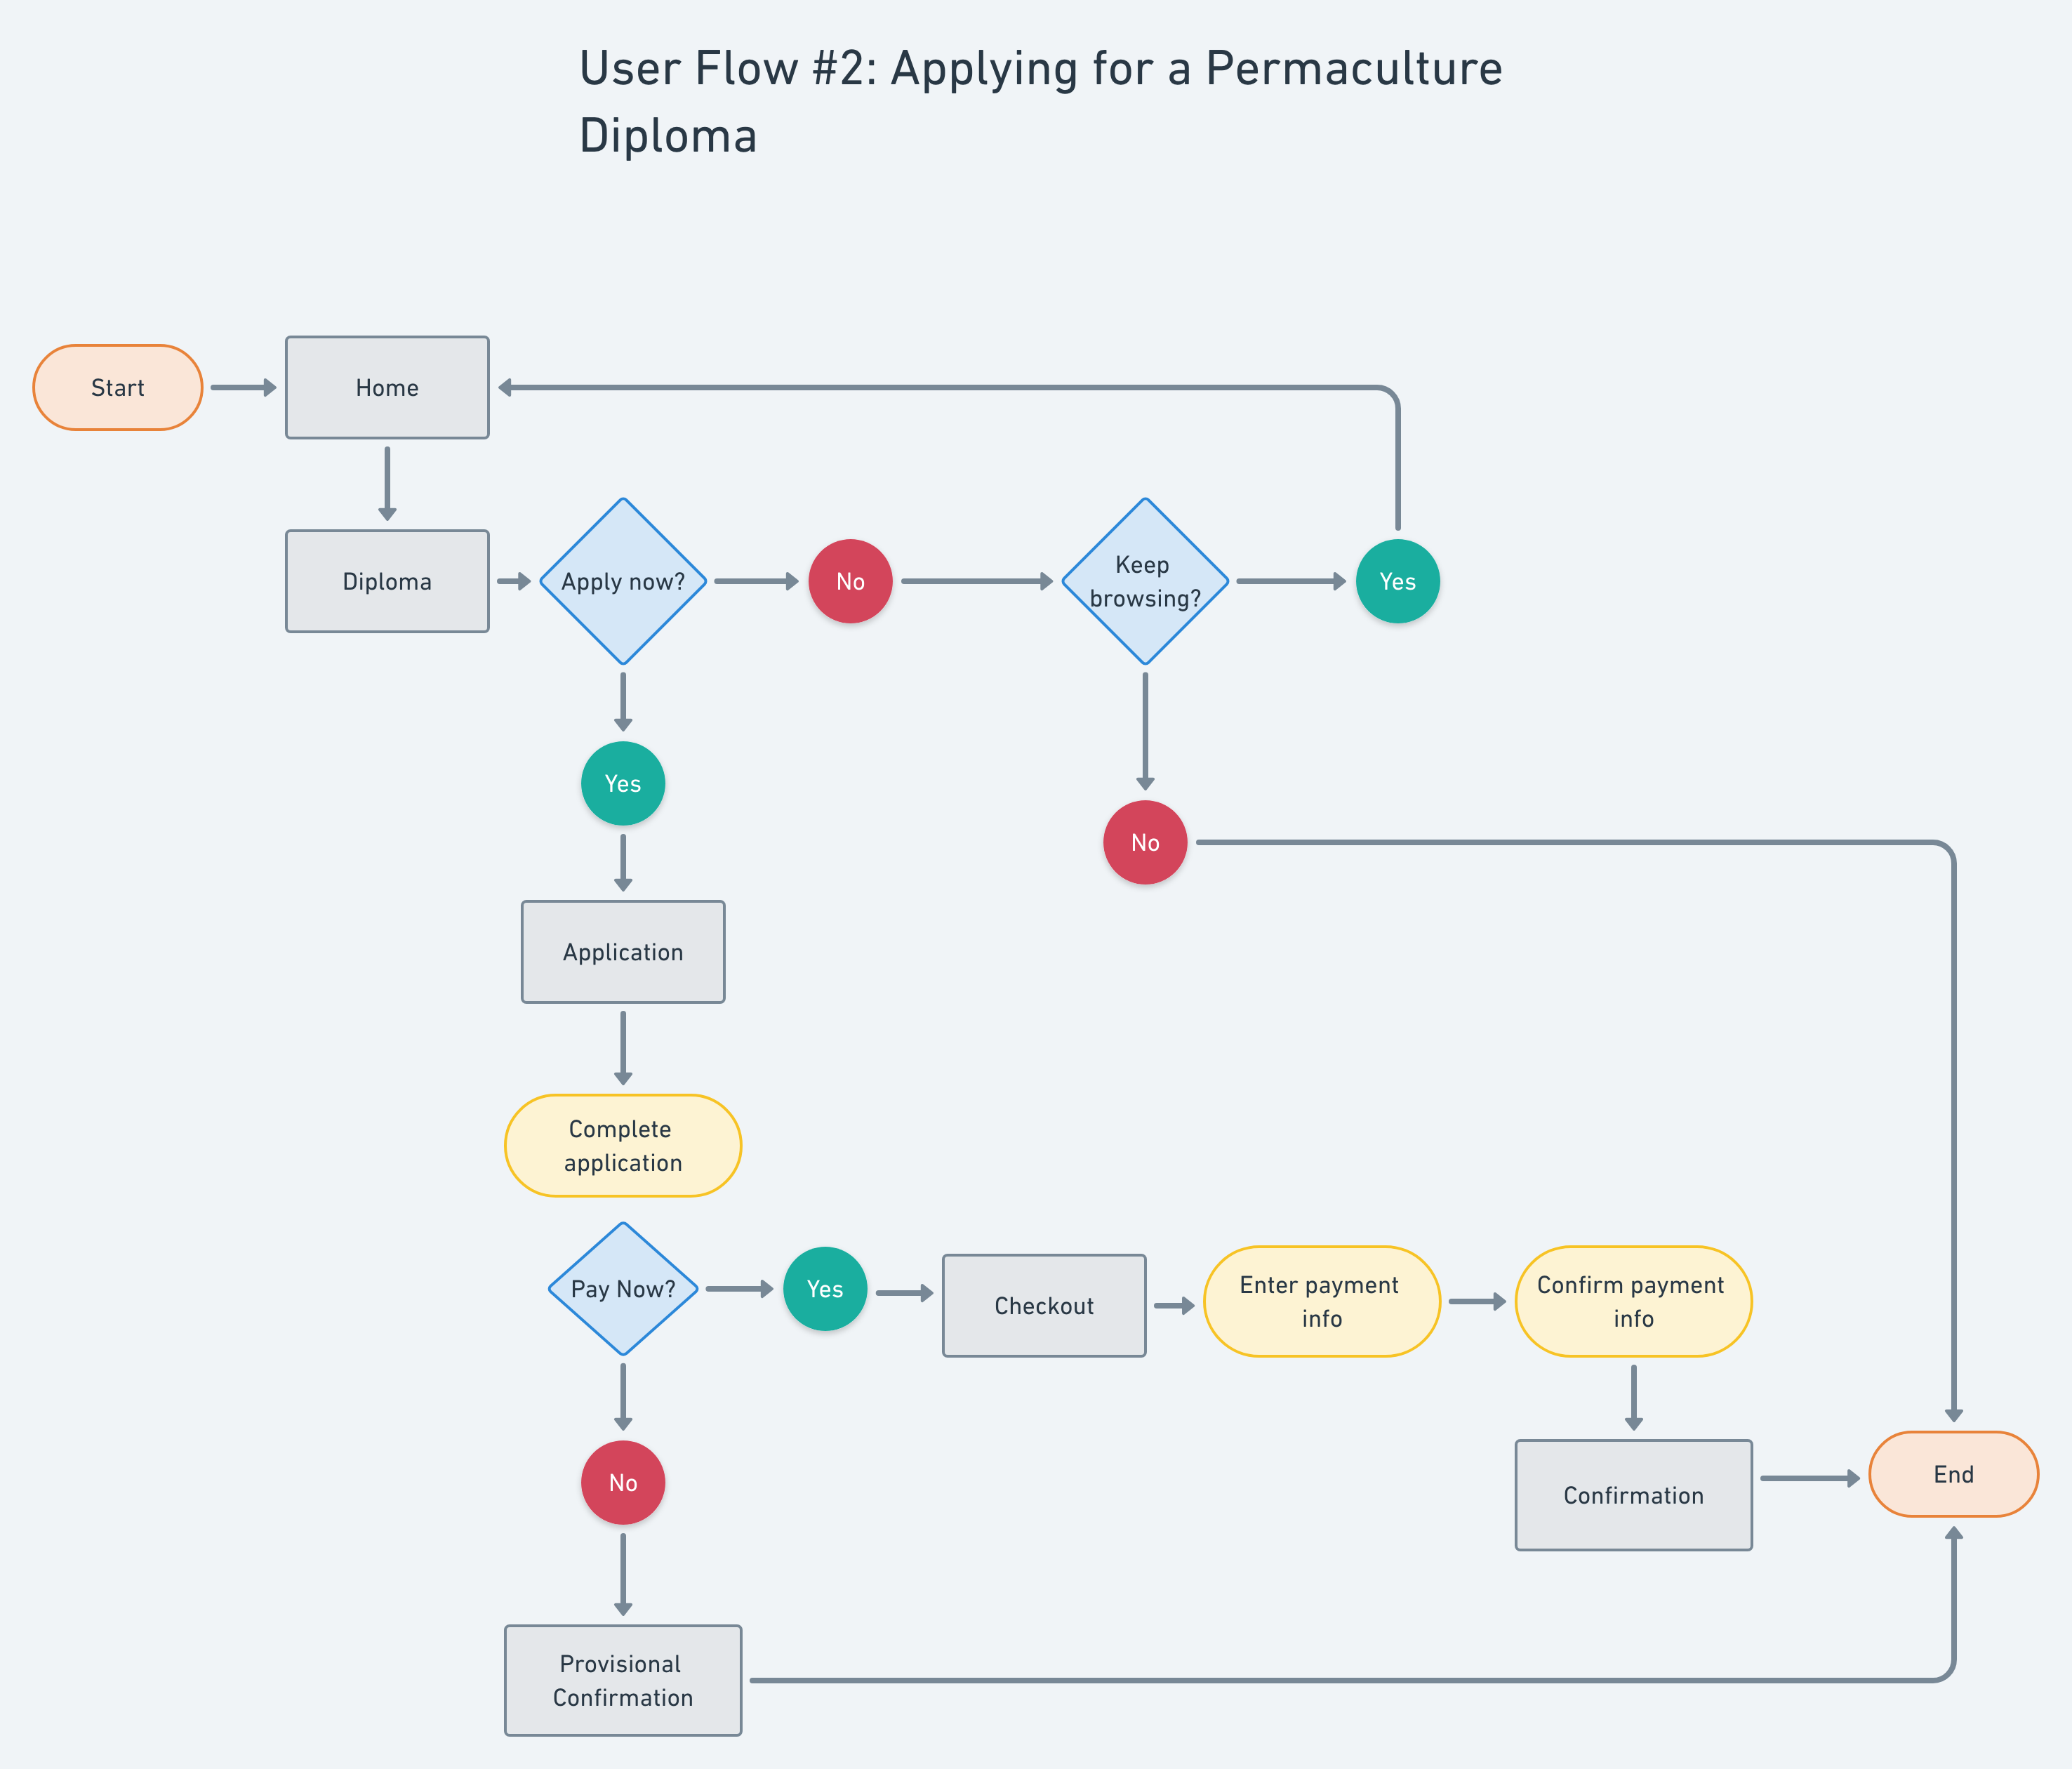 Task flow diagram showing a sample pathway a person might take on the website in order to apply for a diploma.